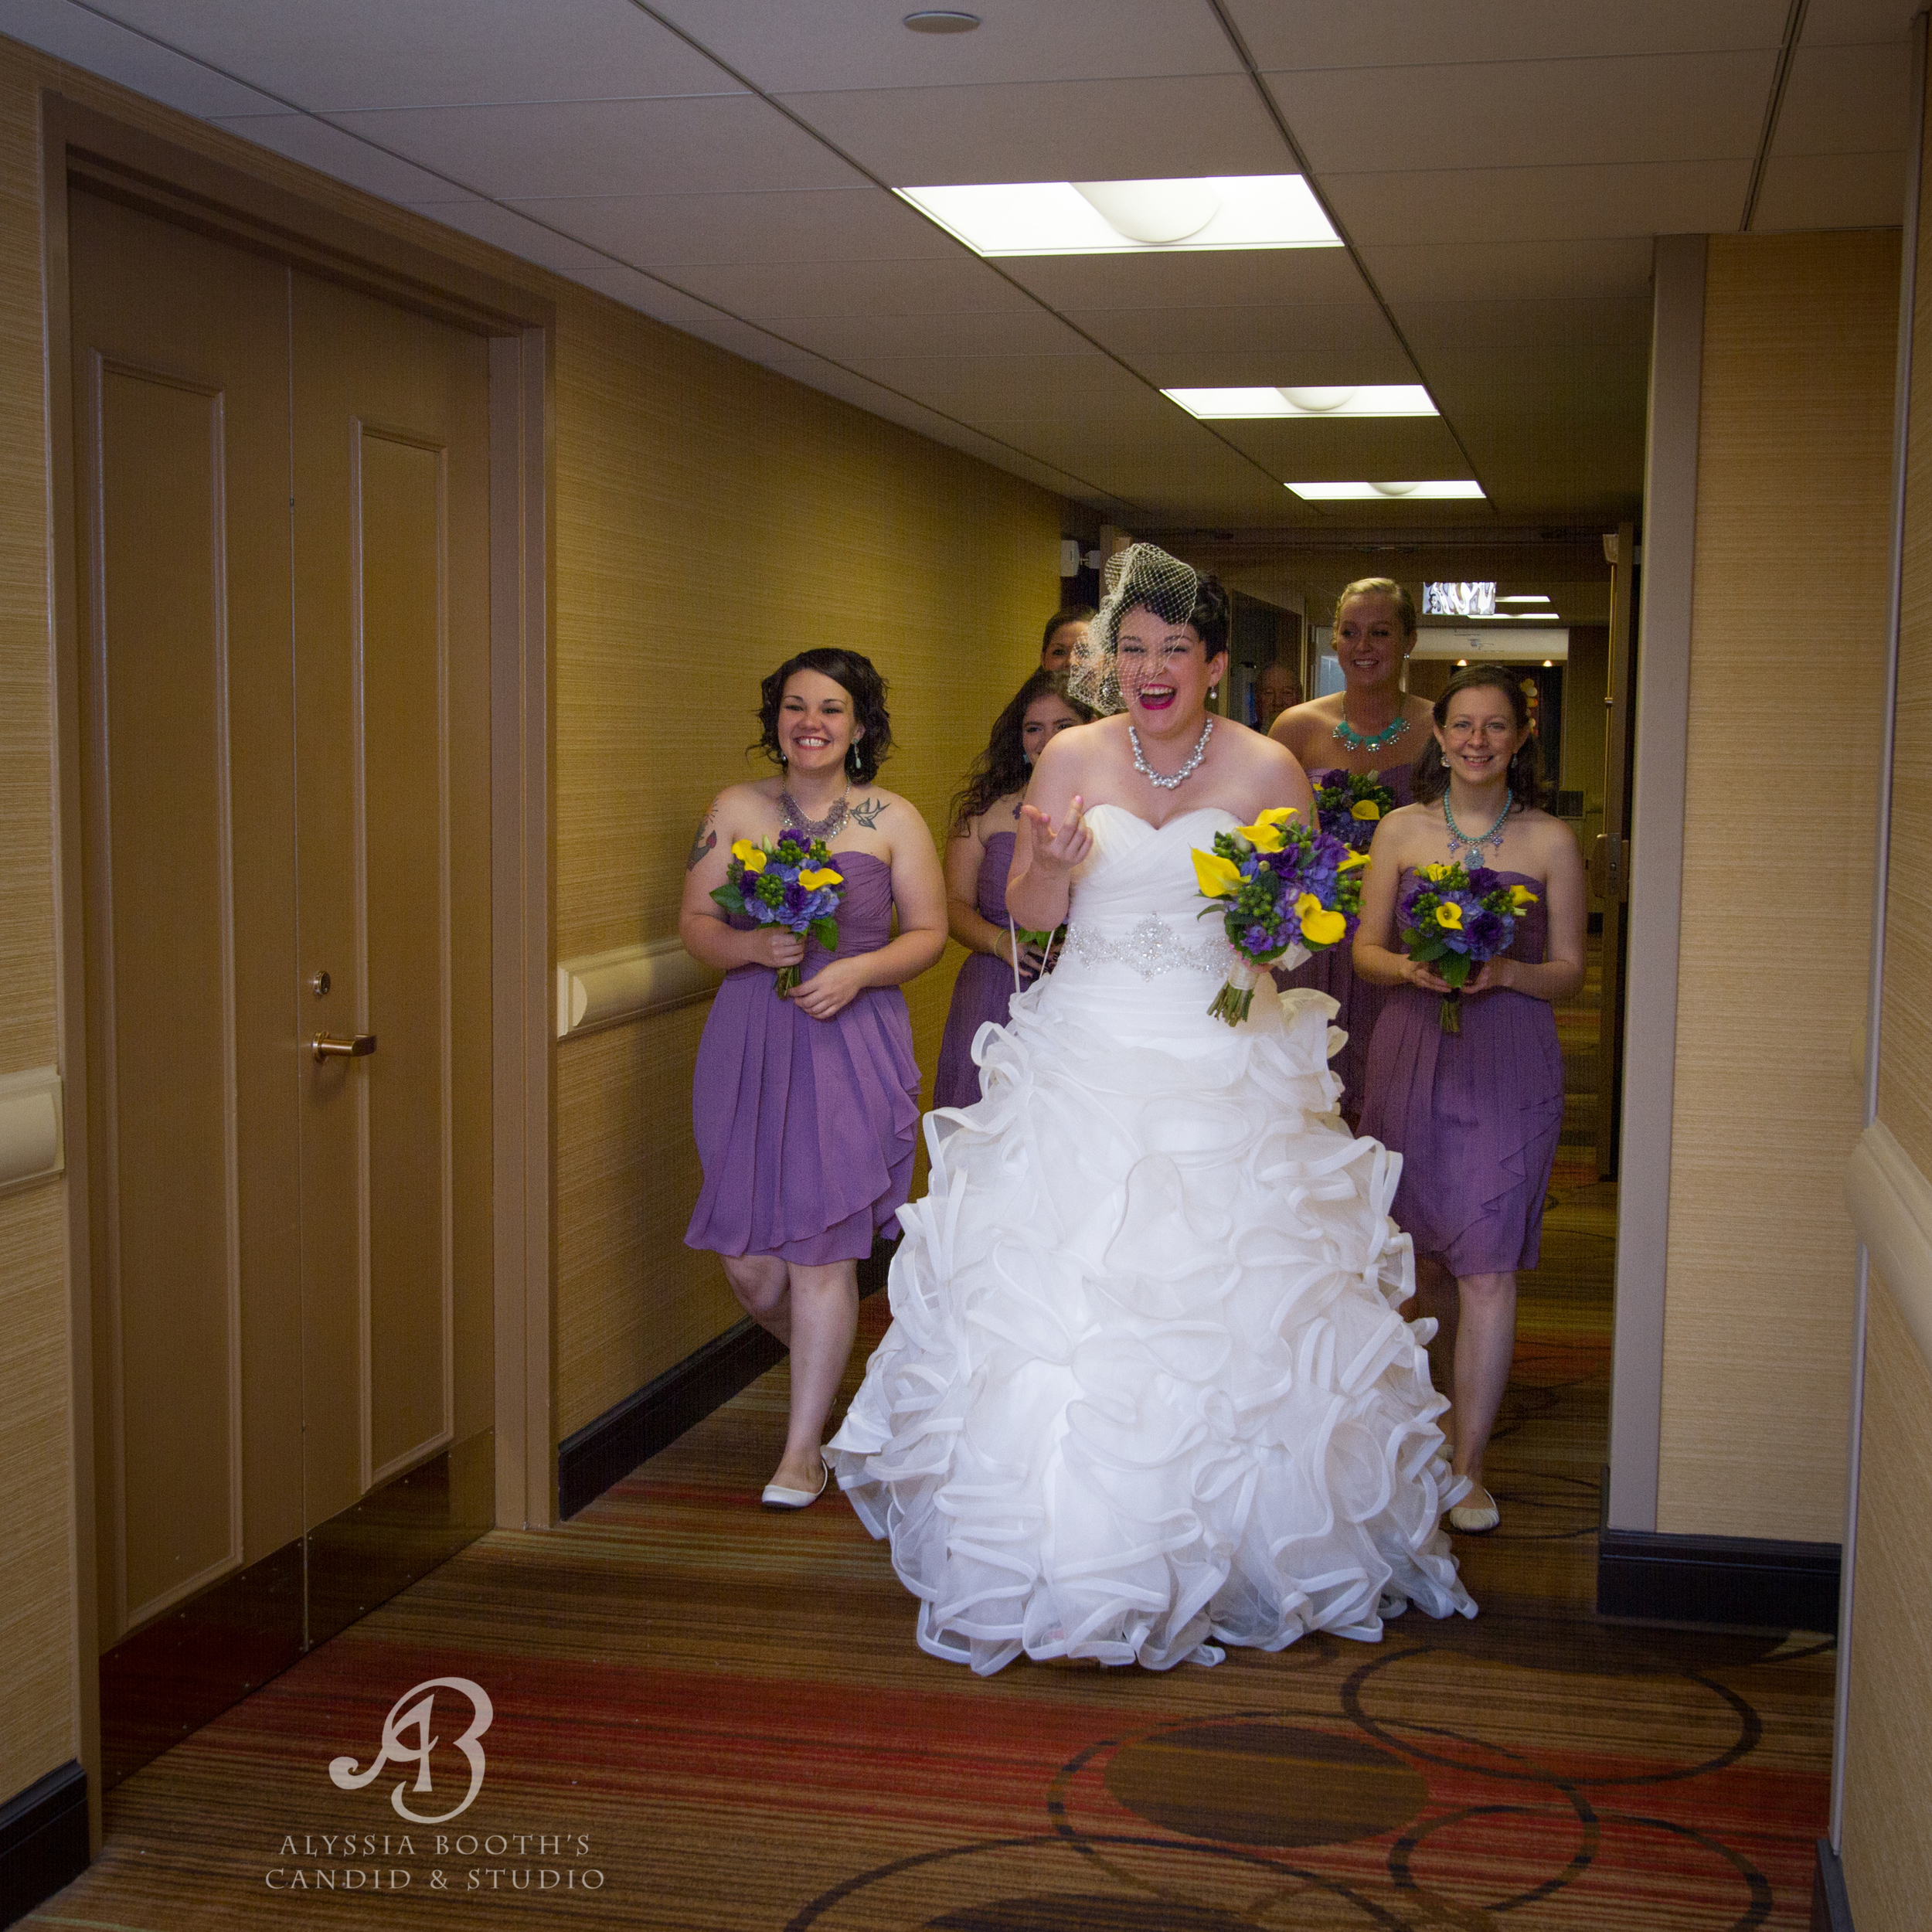 Bridal Party In The Hall